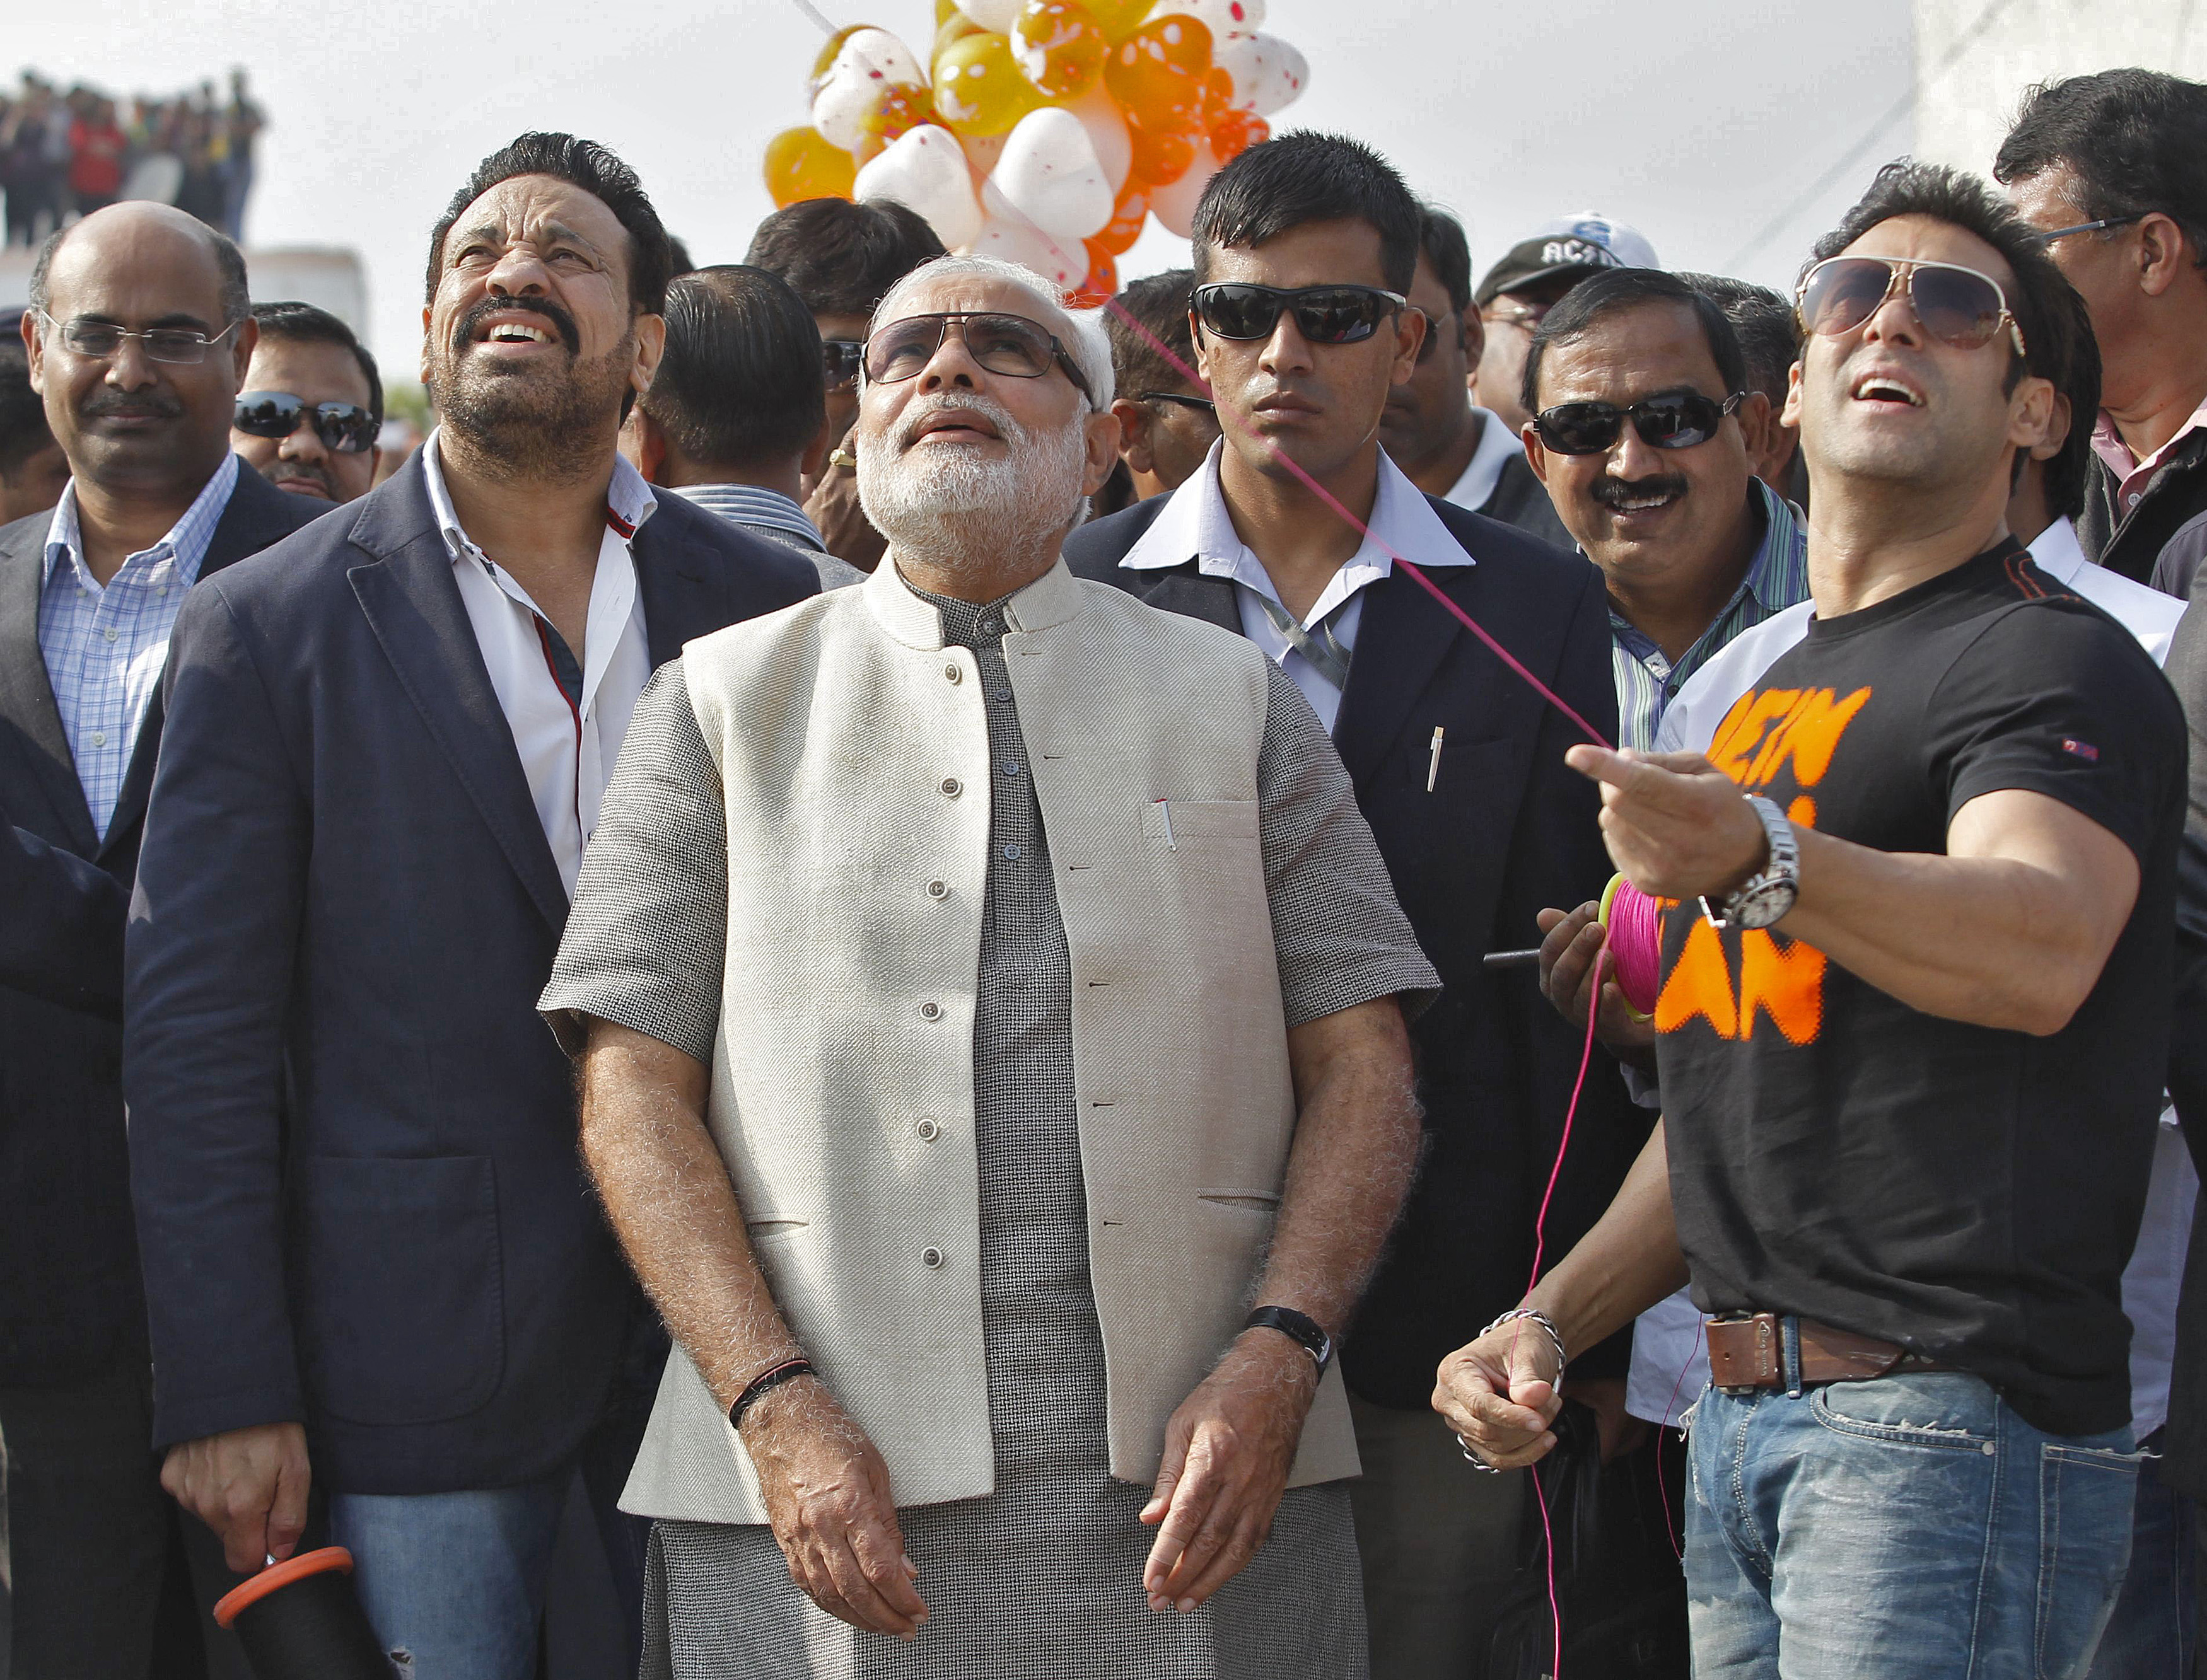 Bollywood actor Salman Khan (R) flies a kite as Hindu nationalist Narendra Modi (C), prime ministerial candidate for India's main opposition Bharatiya Janata Party (BJP) and Gujarat's chief minister, watches during a kite flying festival in the western Indian city of Ahmedabad January 14, 2014.